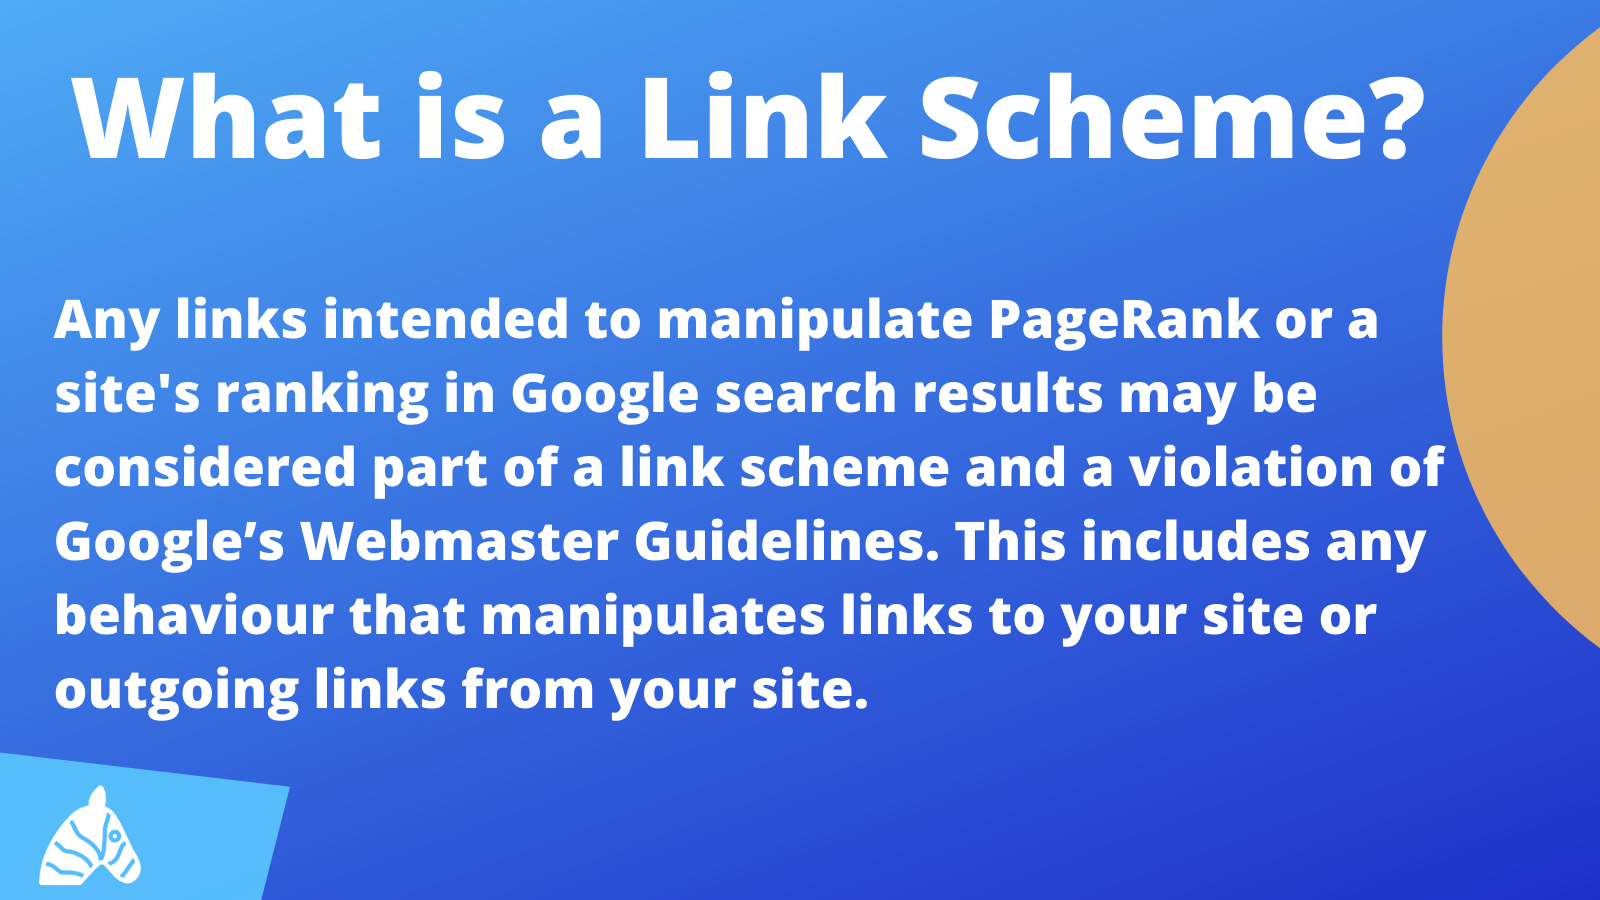 Link scheme information from google webmasters